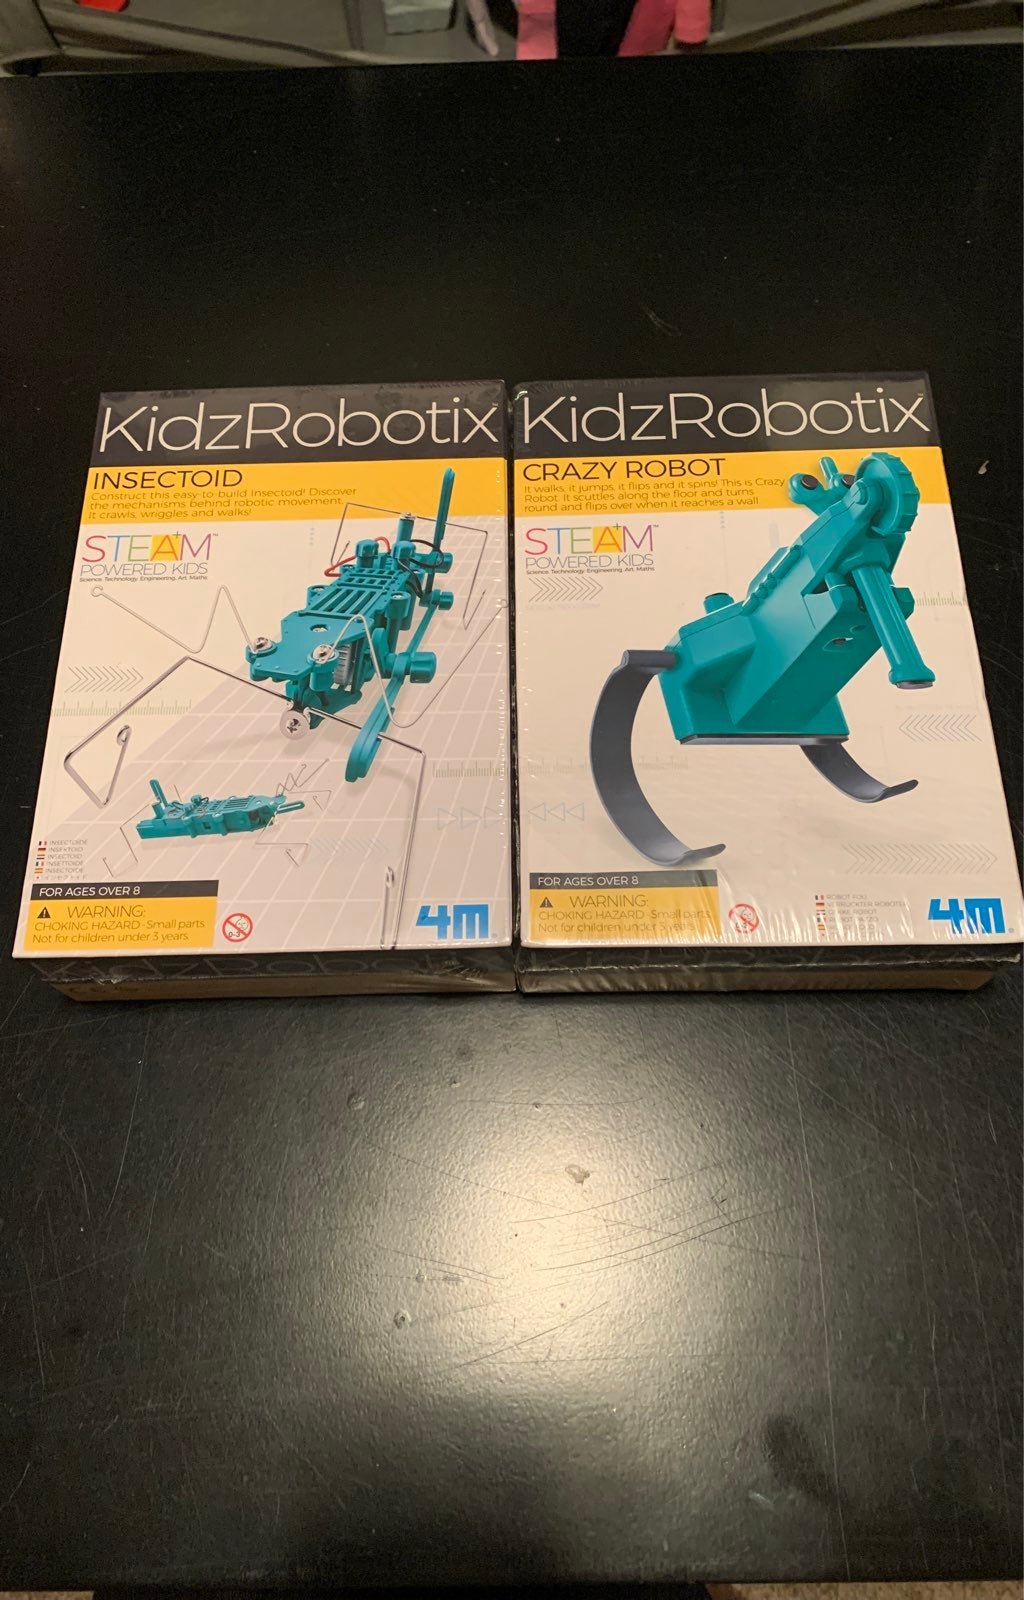 2 new kidzrobotix insectoid/robot kits